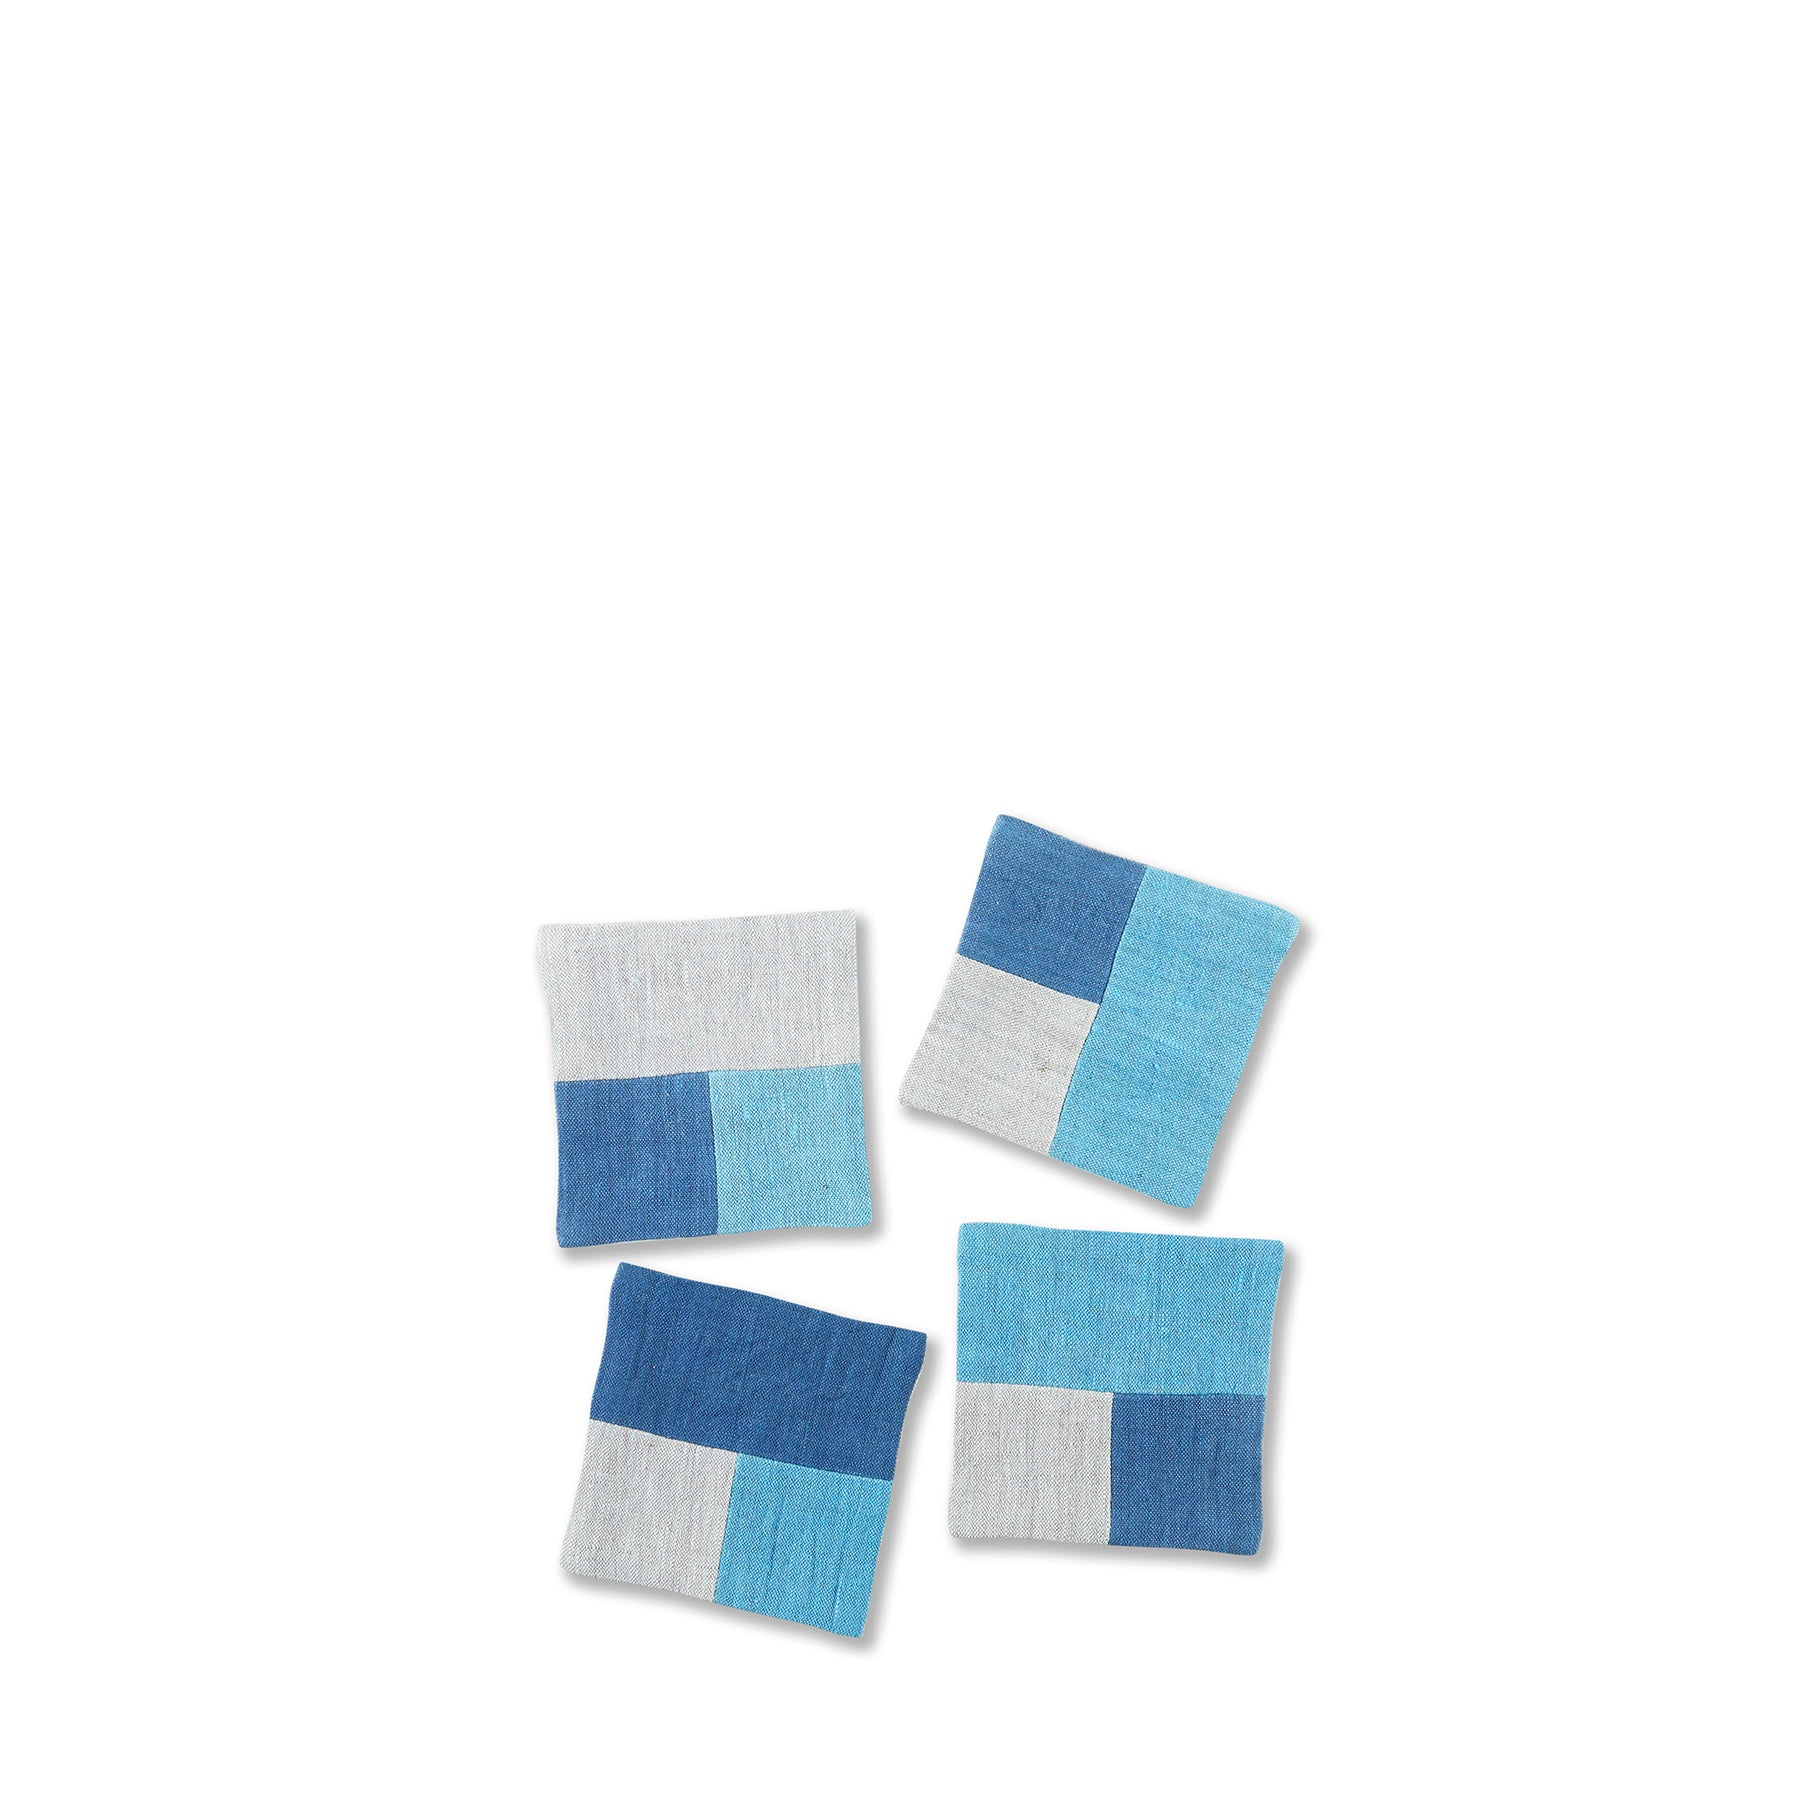 Linen Patchwork Coaster Set in Blues (Set of 4) Zoom Image 1